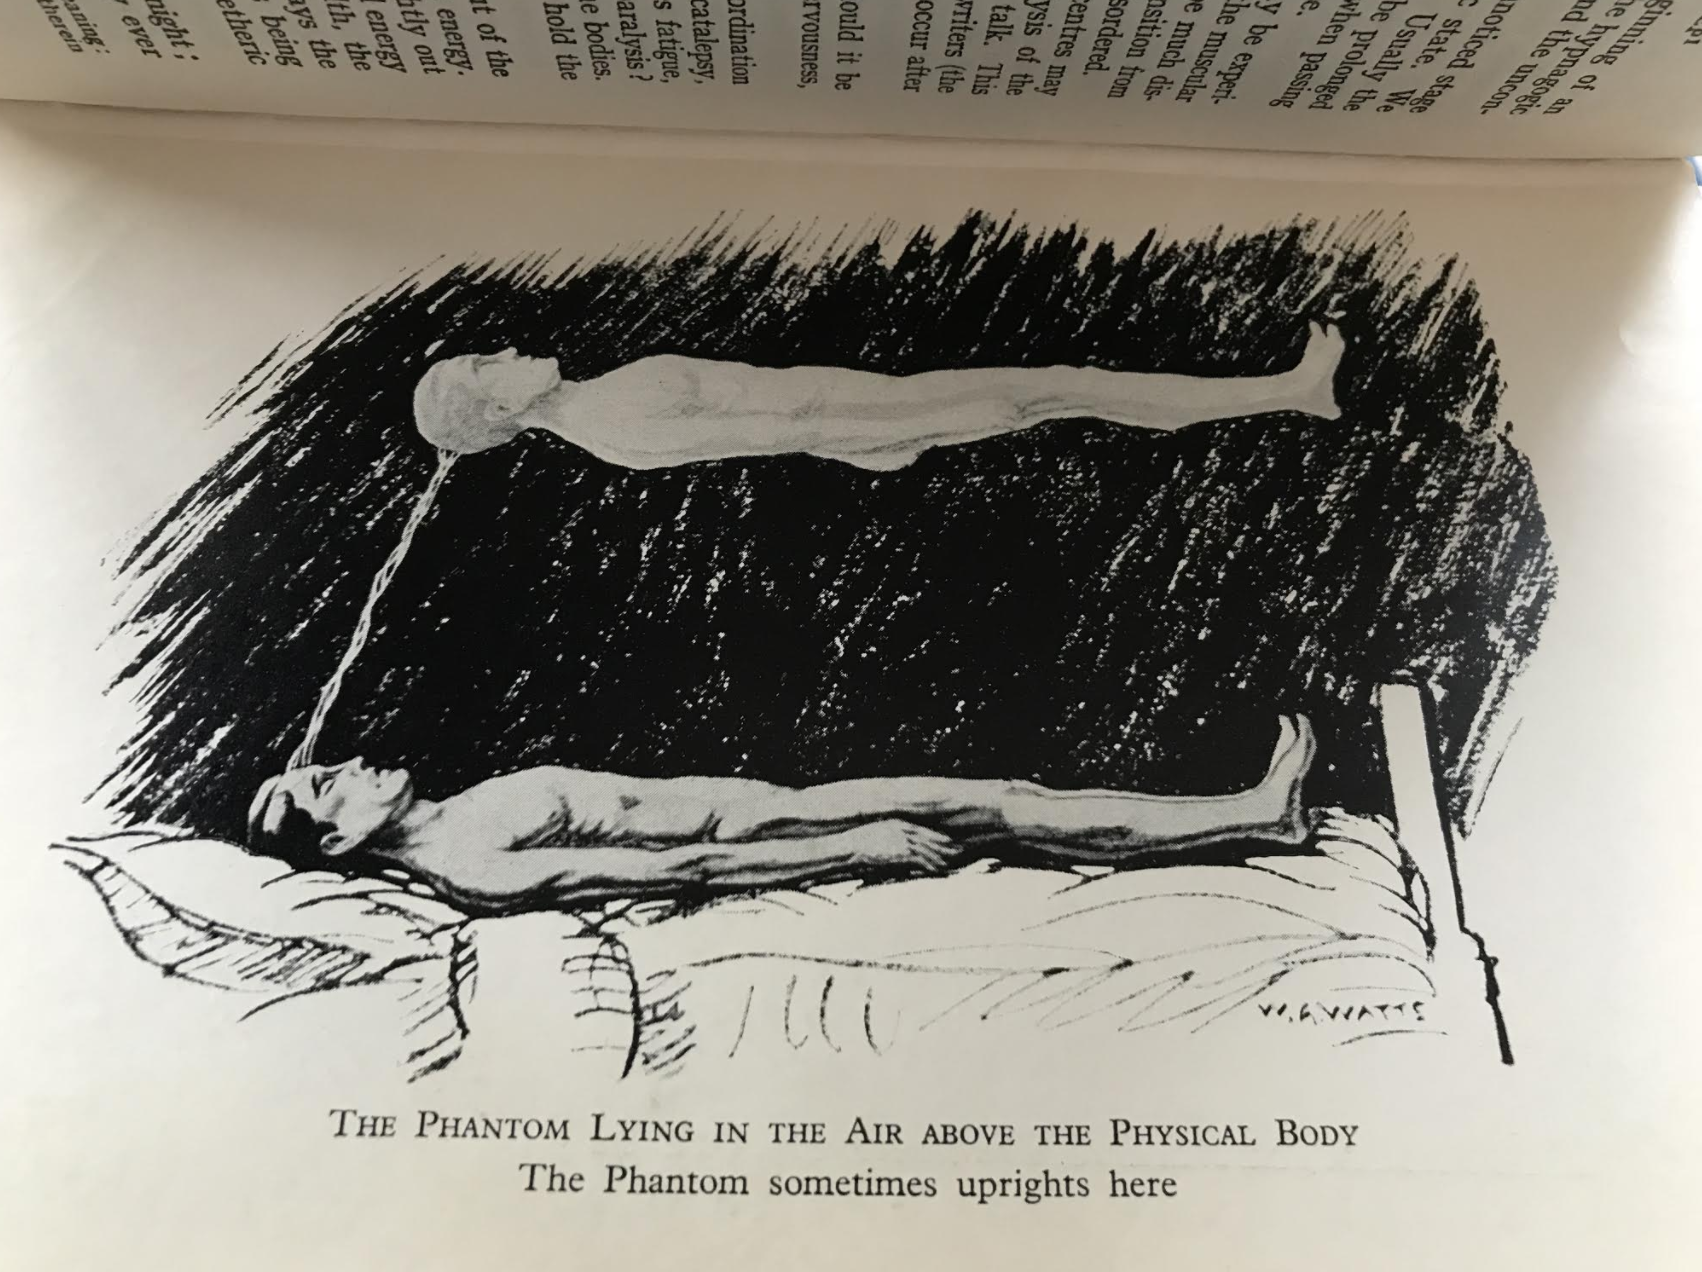 Astral Projection begins. From The Projection of the Astral Body, by Hereward Carrington and Sylvan Muldoon (1929).